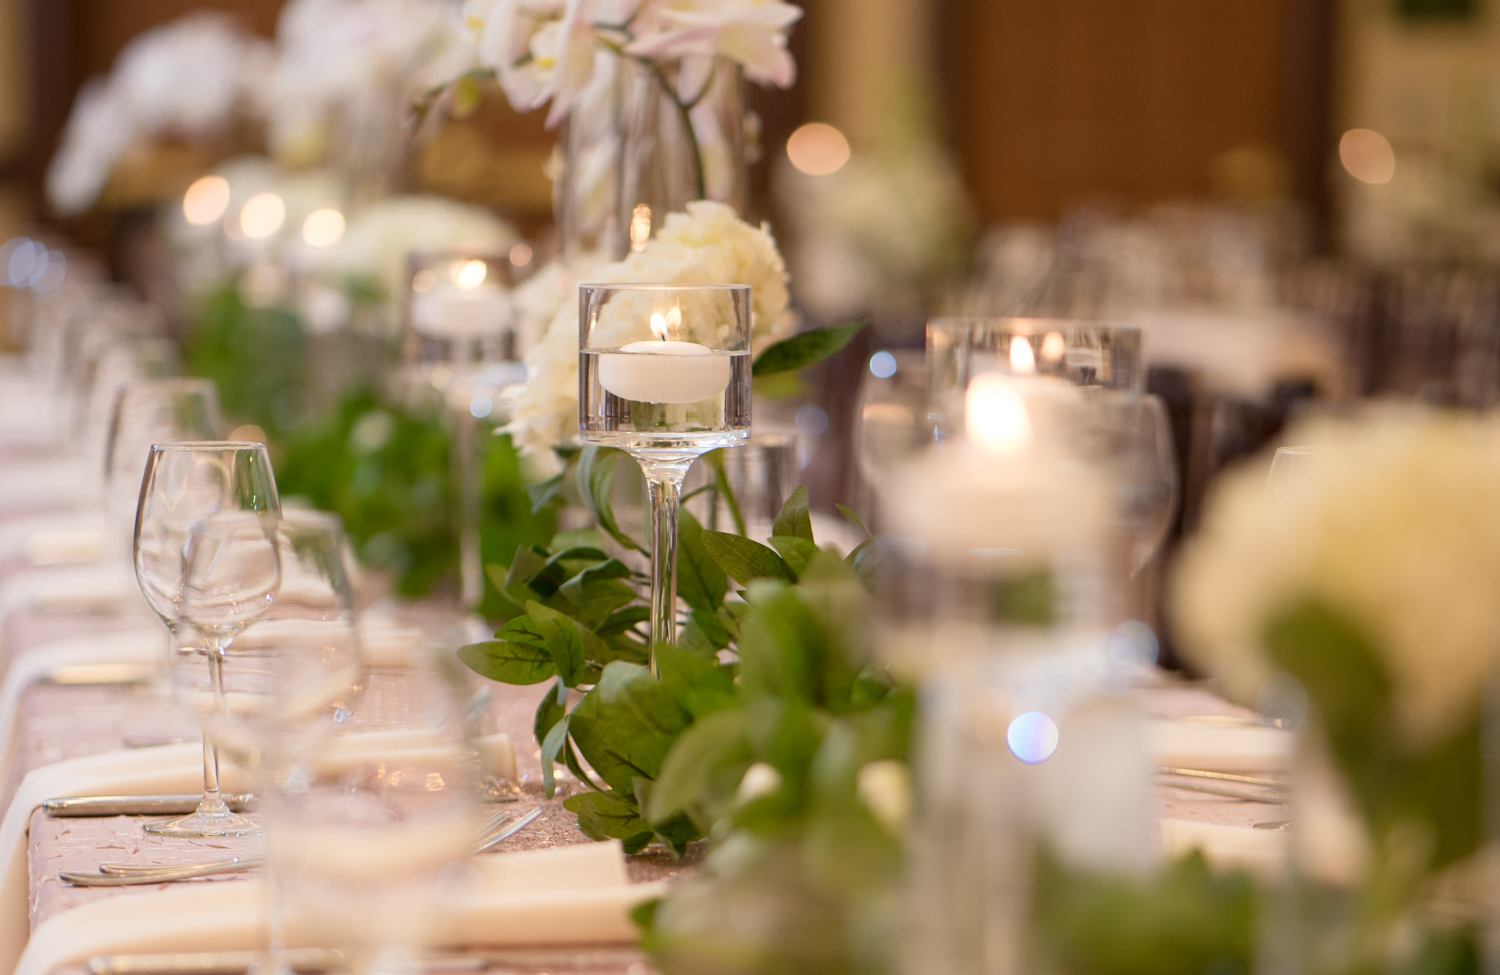 White, Green and Beige elements used for table decor.